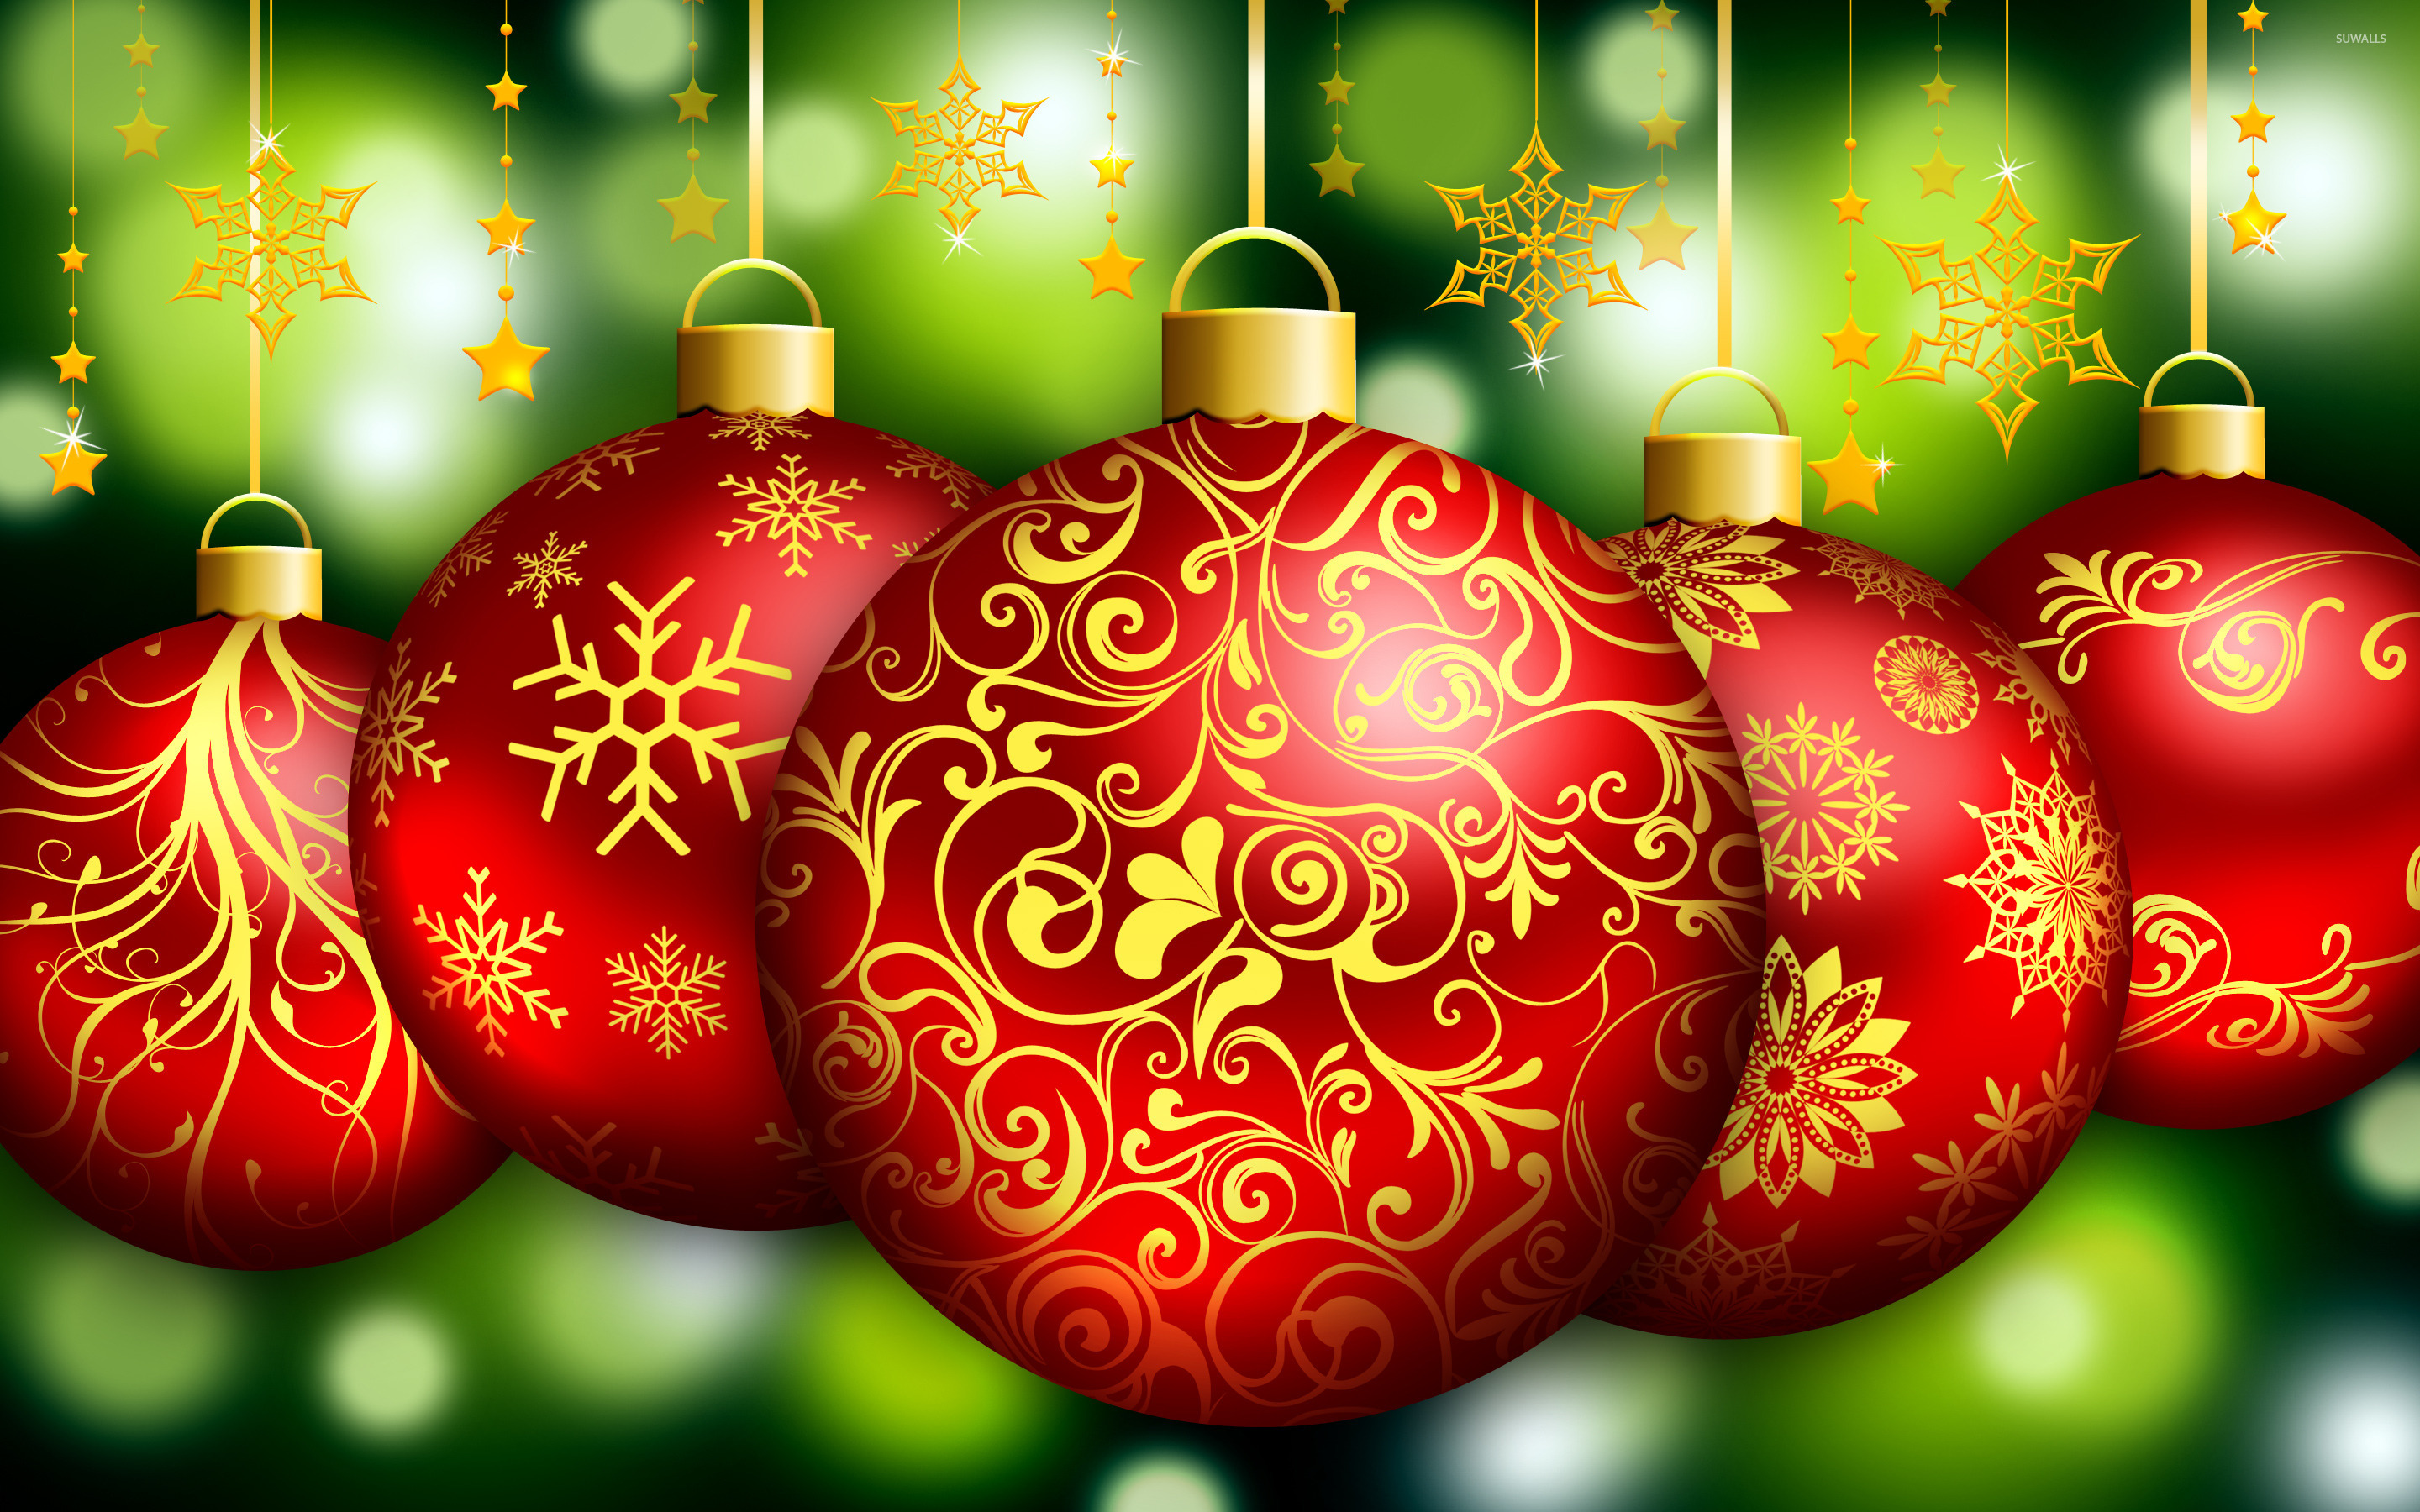 Download Christmas Ornament Wallpaper Gallery